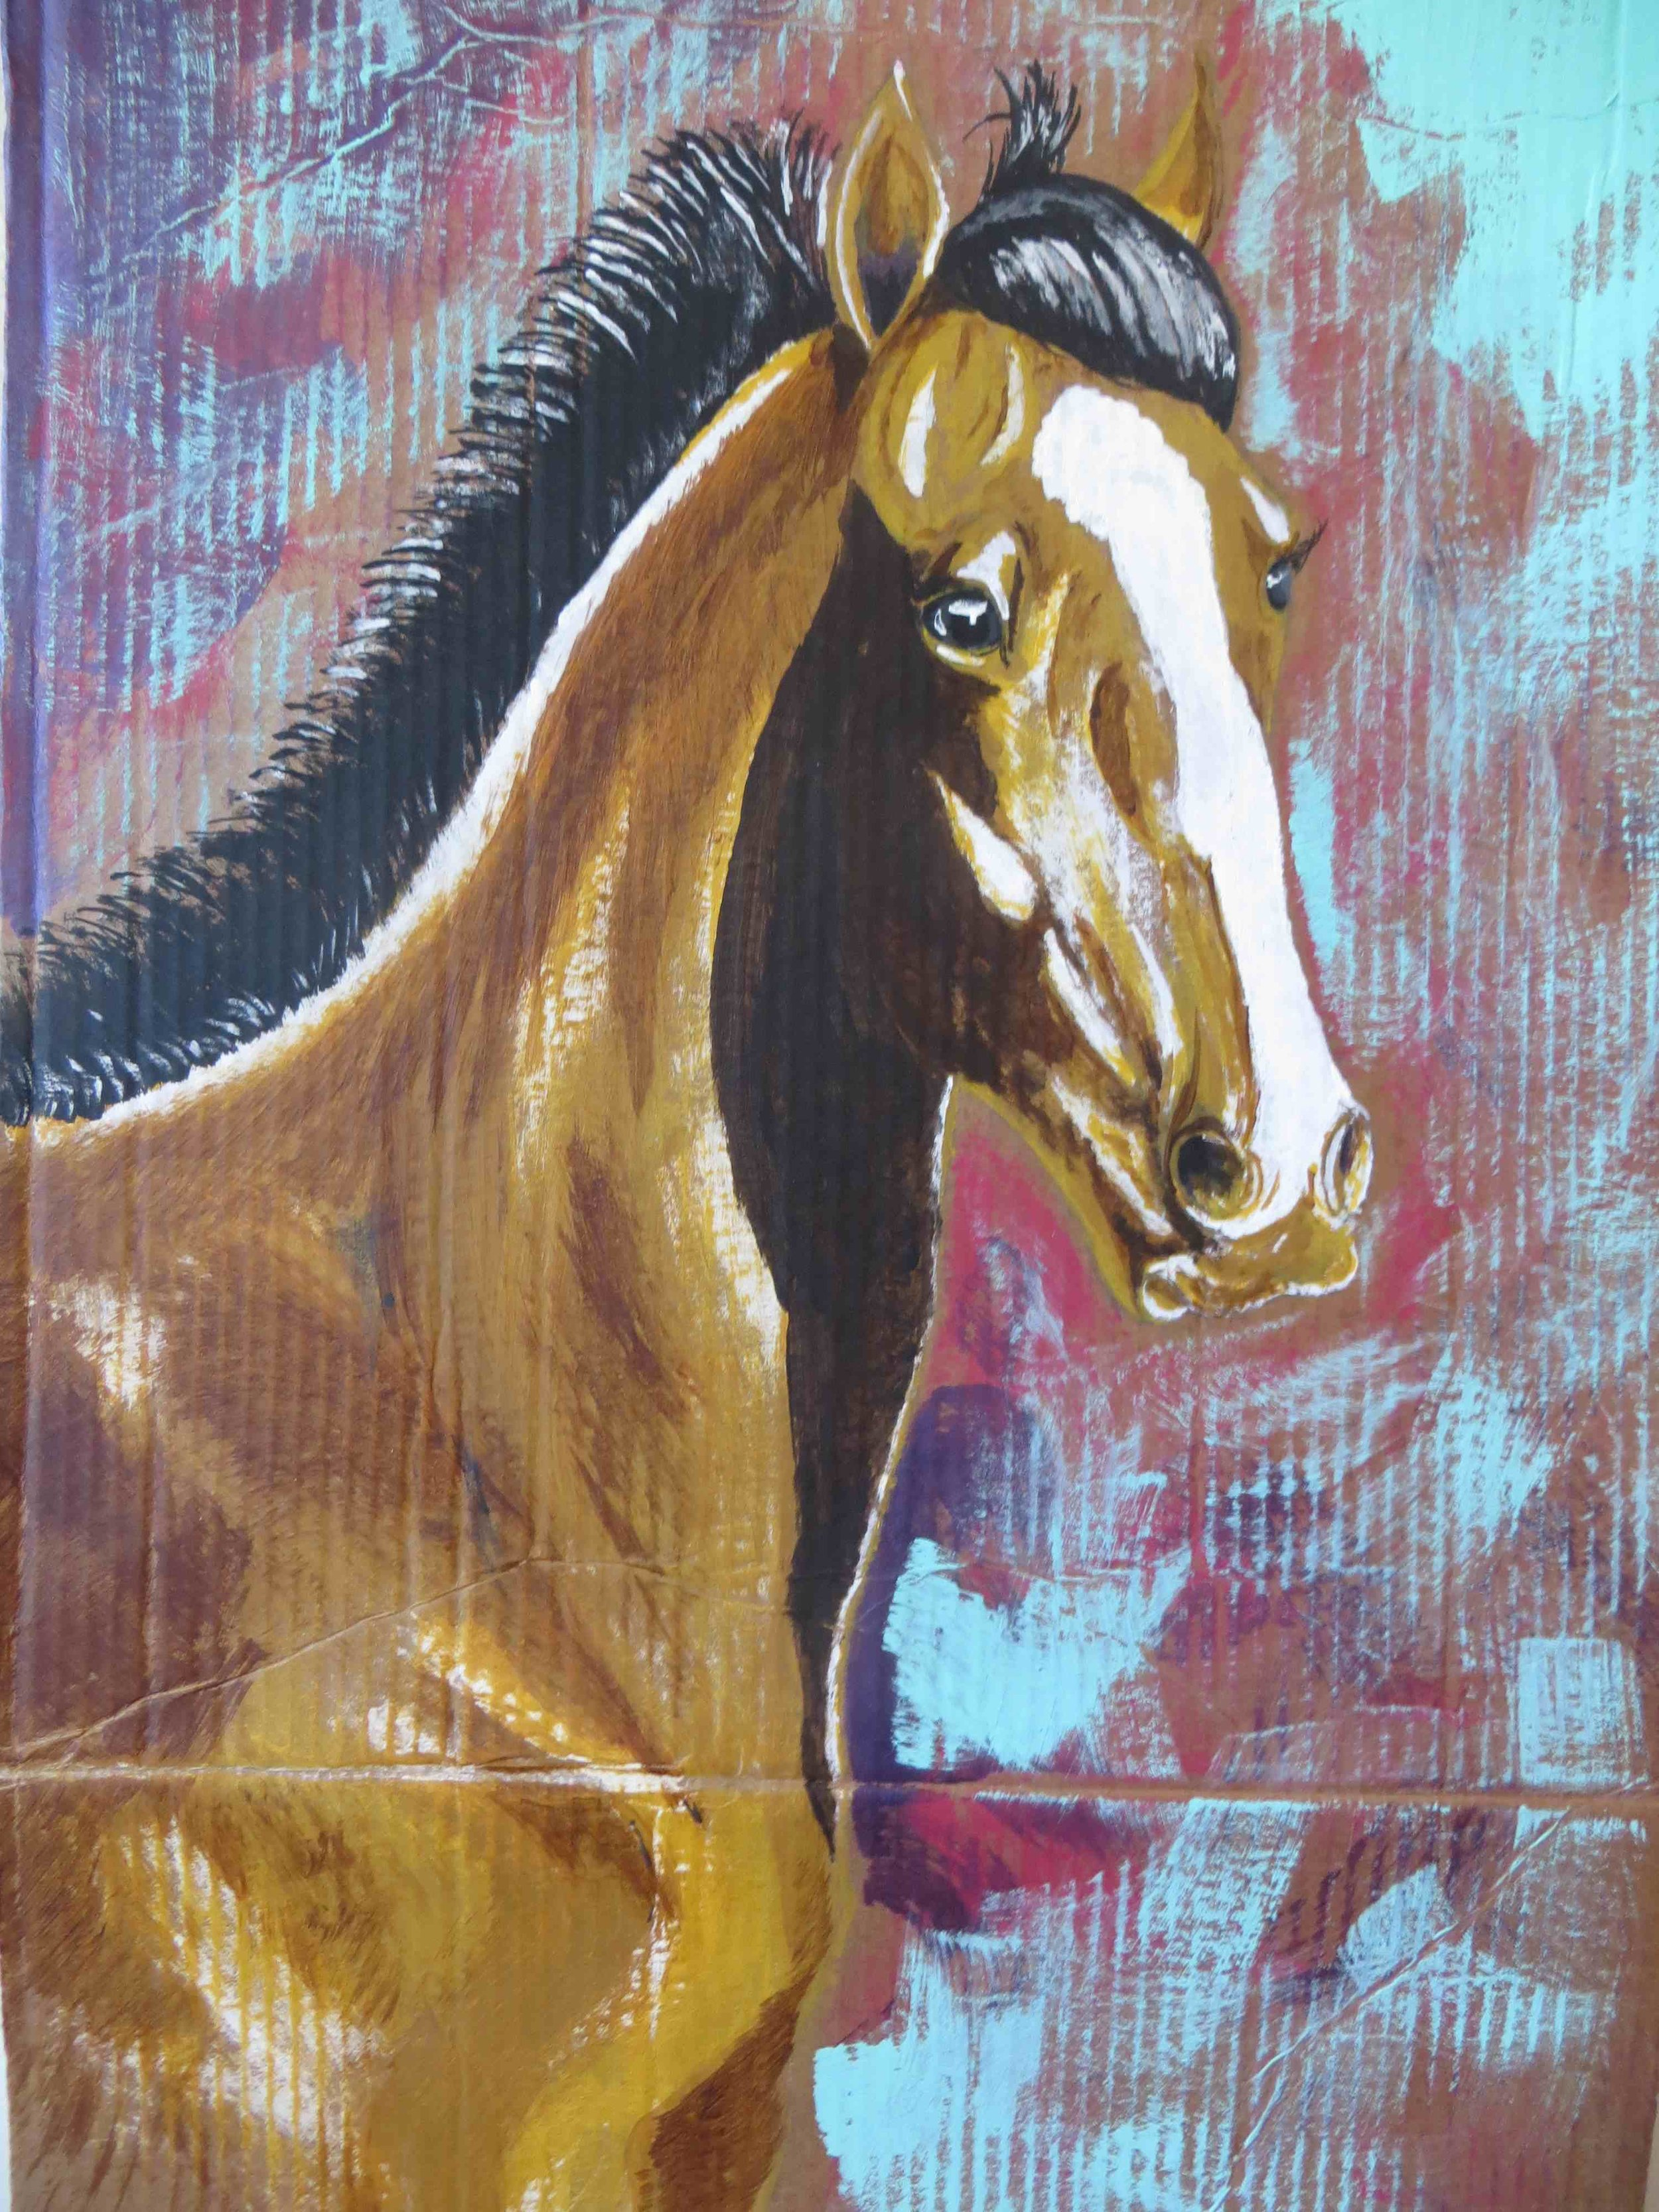 Acrylic Horse painting on Corrugated Cardboarde by Jesse -001 - Copy.jpg